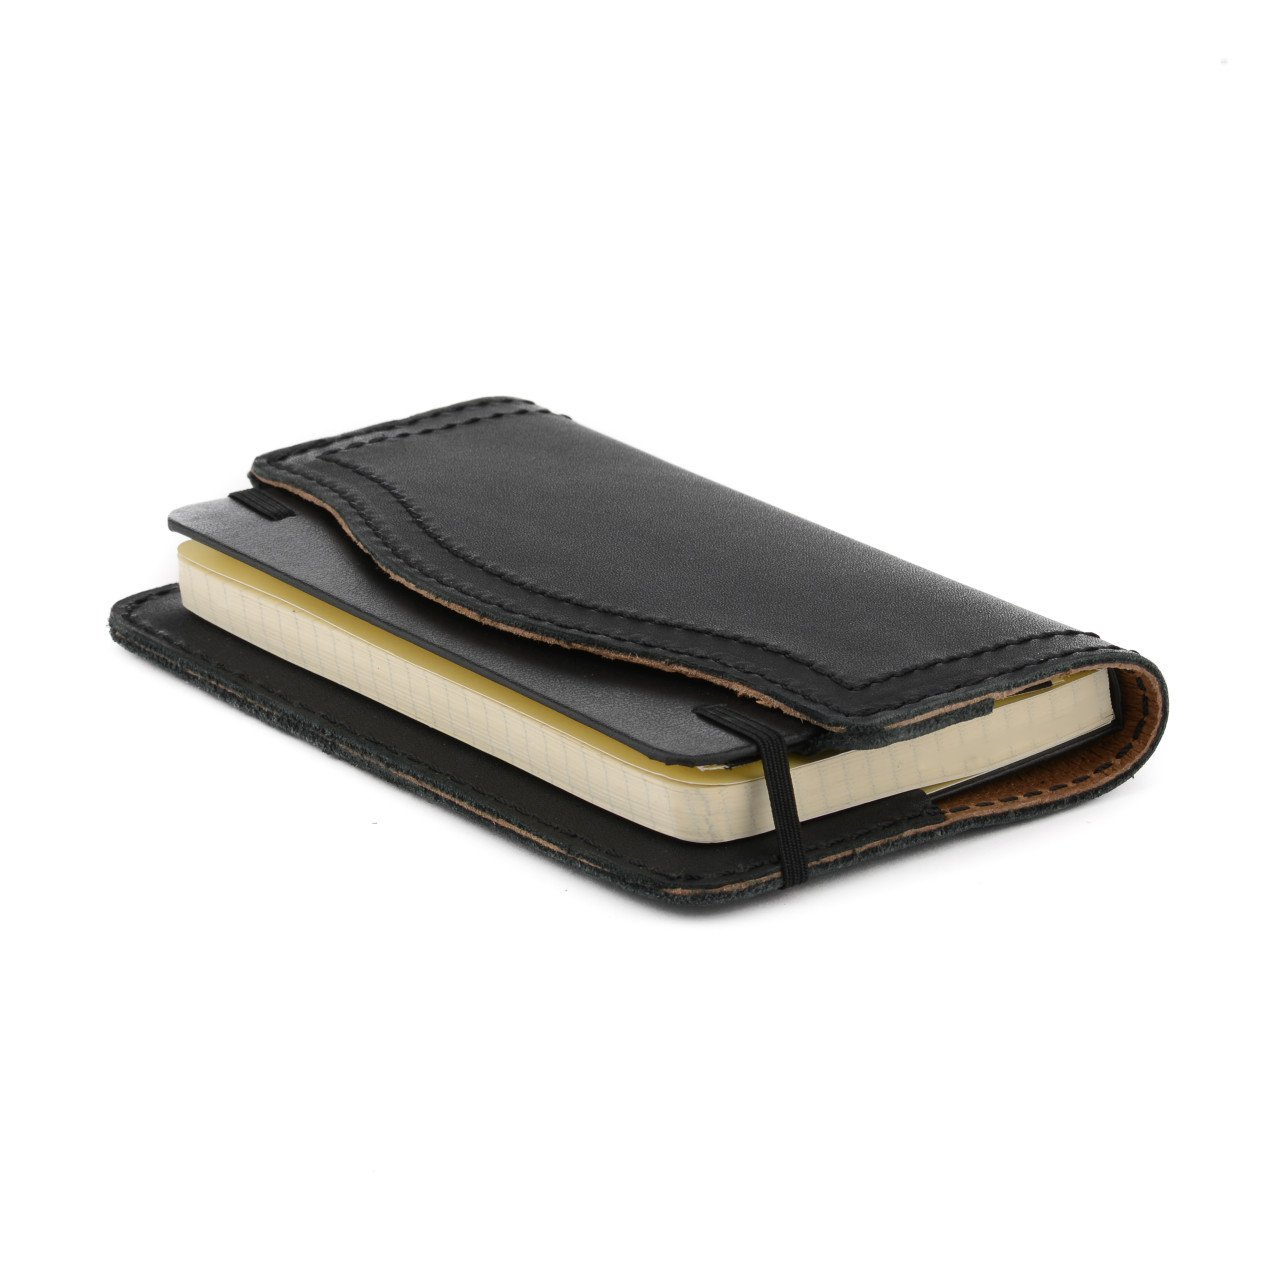 Saddleback Leather Co. Moleskine Notebook Cahier Leather Journal Cover for Sketchbooks and Notebooks Includes 100 Year Warranty